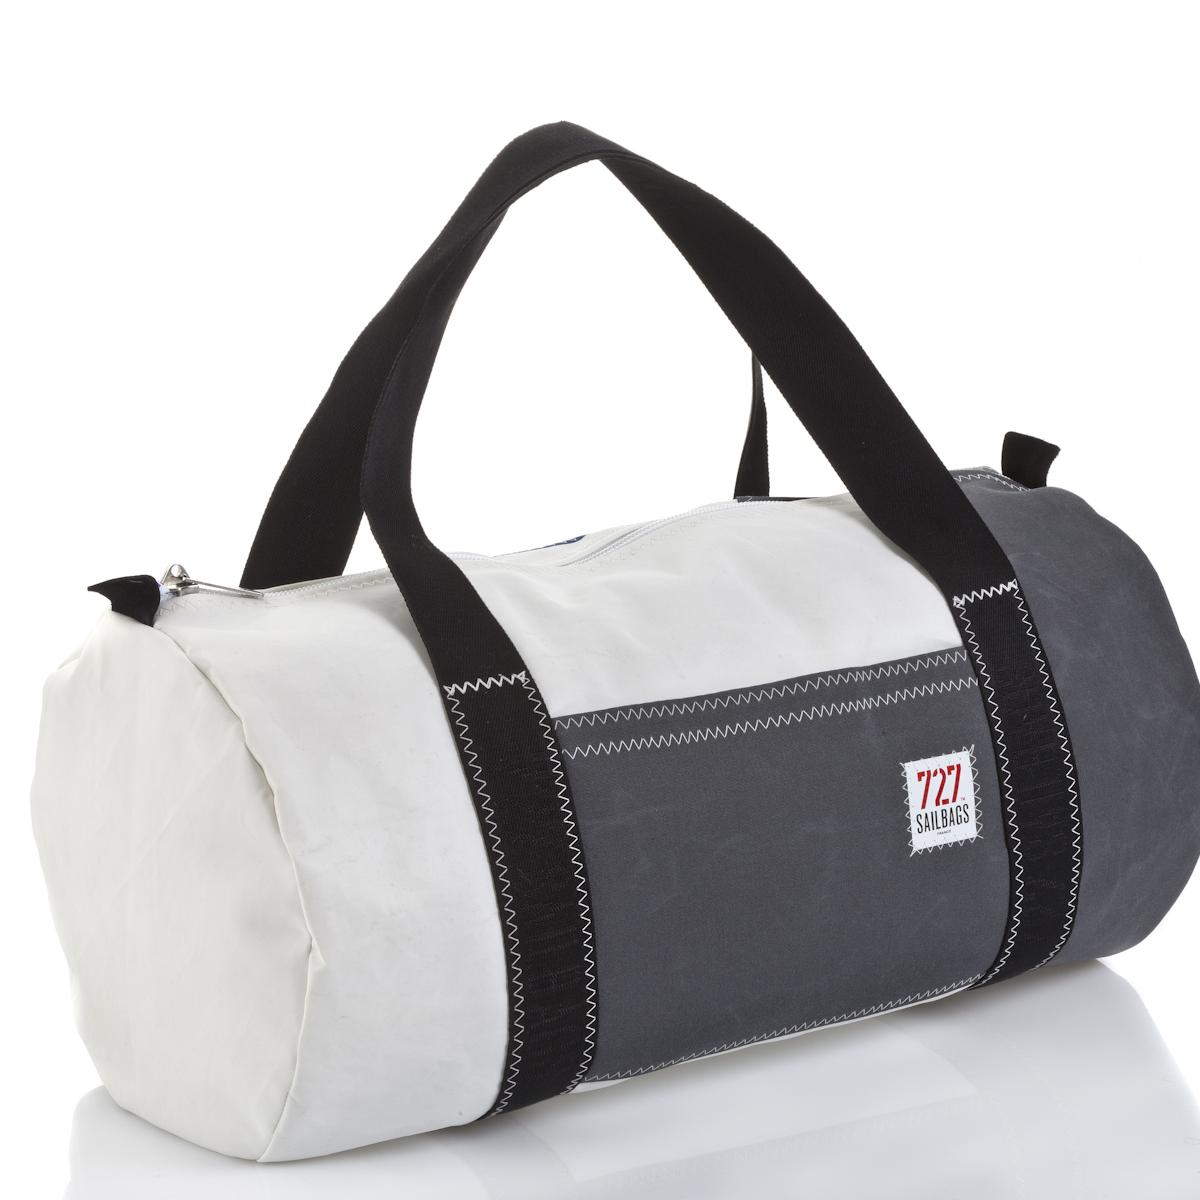 Onshore Tasche Dacron Hit Light Grey, No 6 Blue, Rückseite